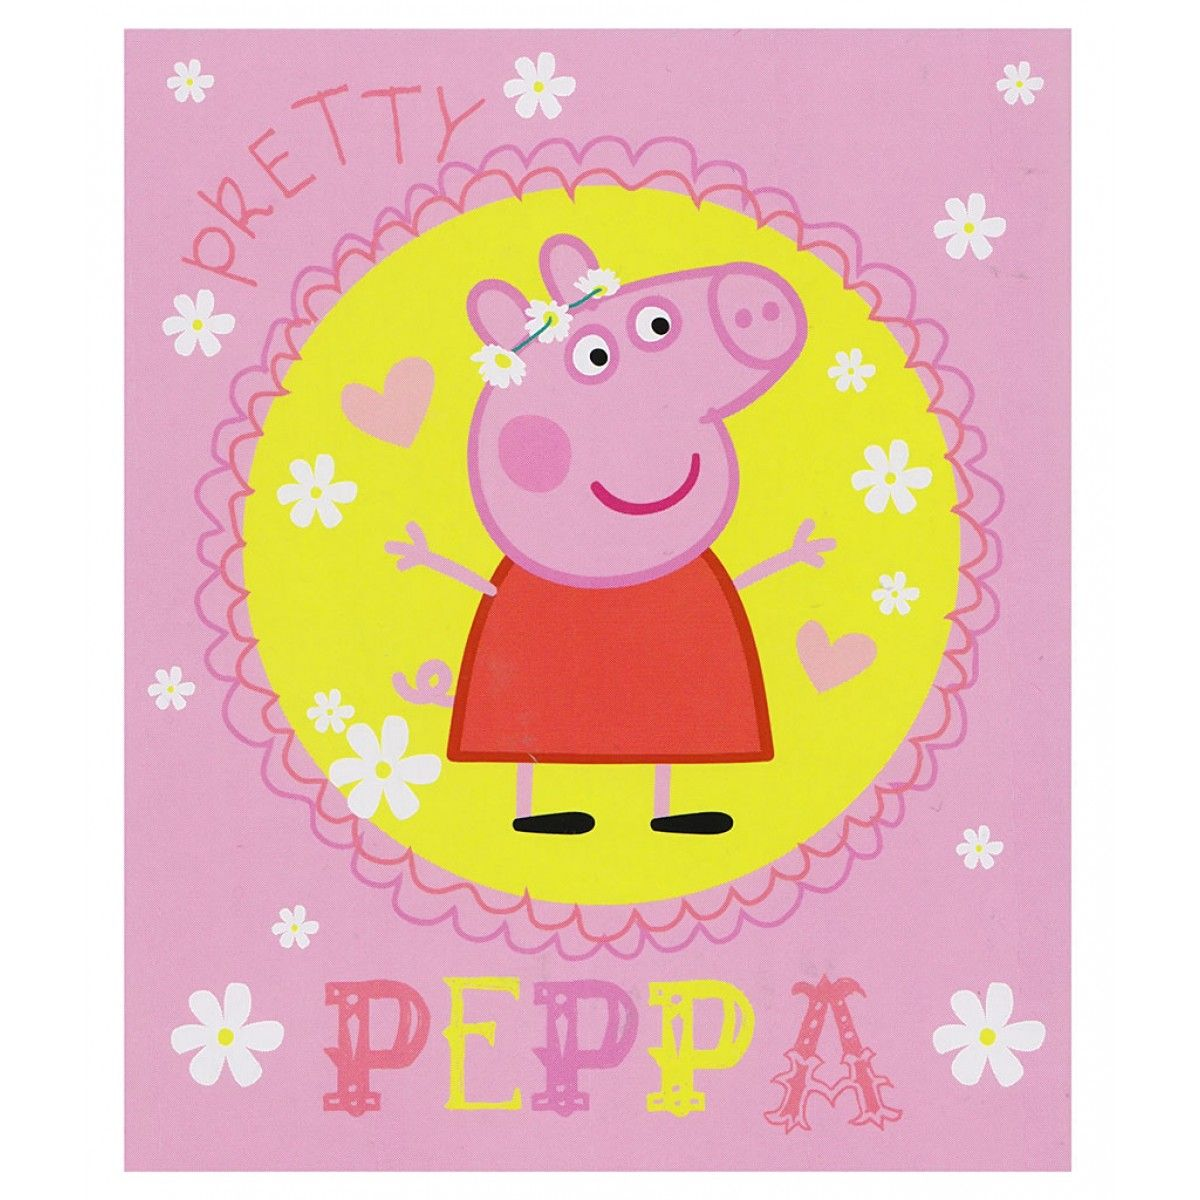 Peppa Pig Pretty Blanket (With images) Pretty blankets